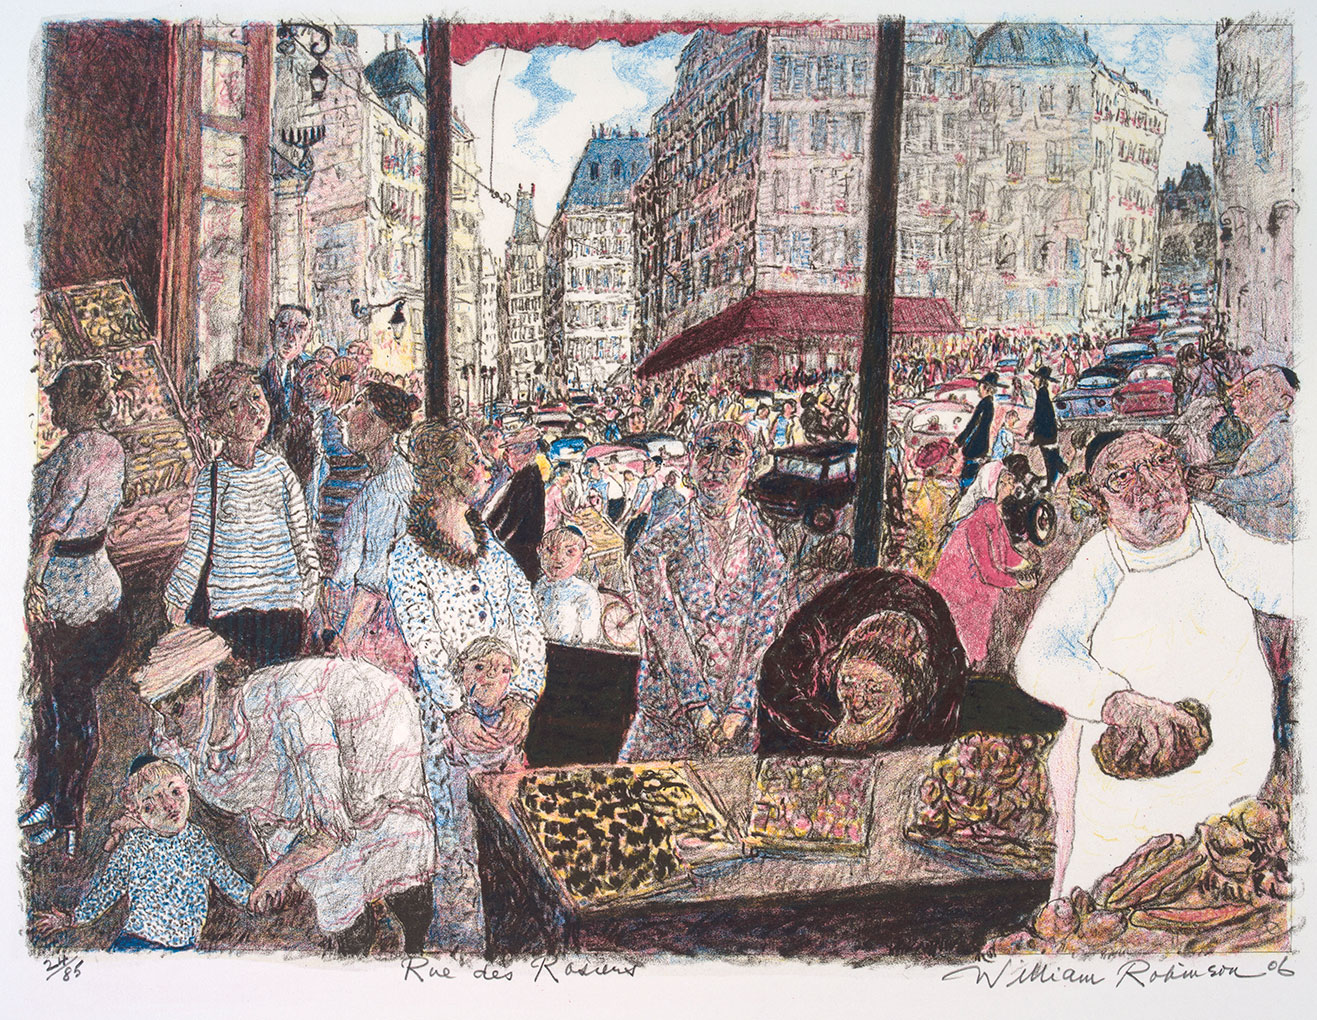 William ROBINSON 'Rue des Rosiers' 2006, lithograph. QUT Art Collection, Gift of the artist under the Cultural Gifts Program, 2008.